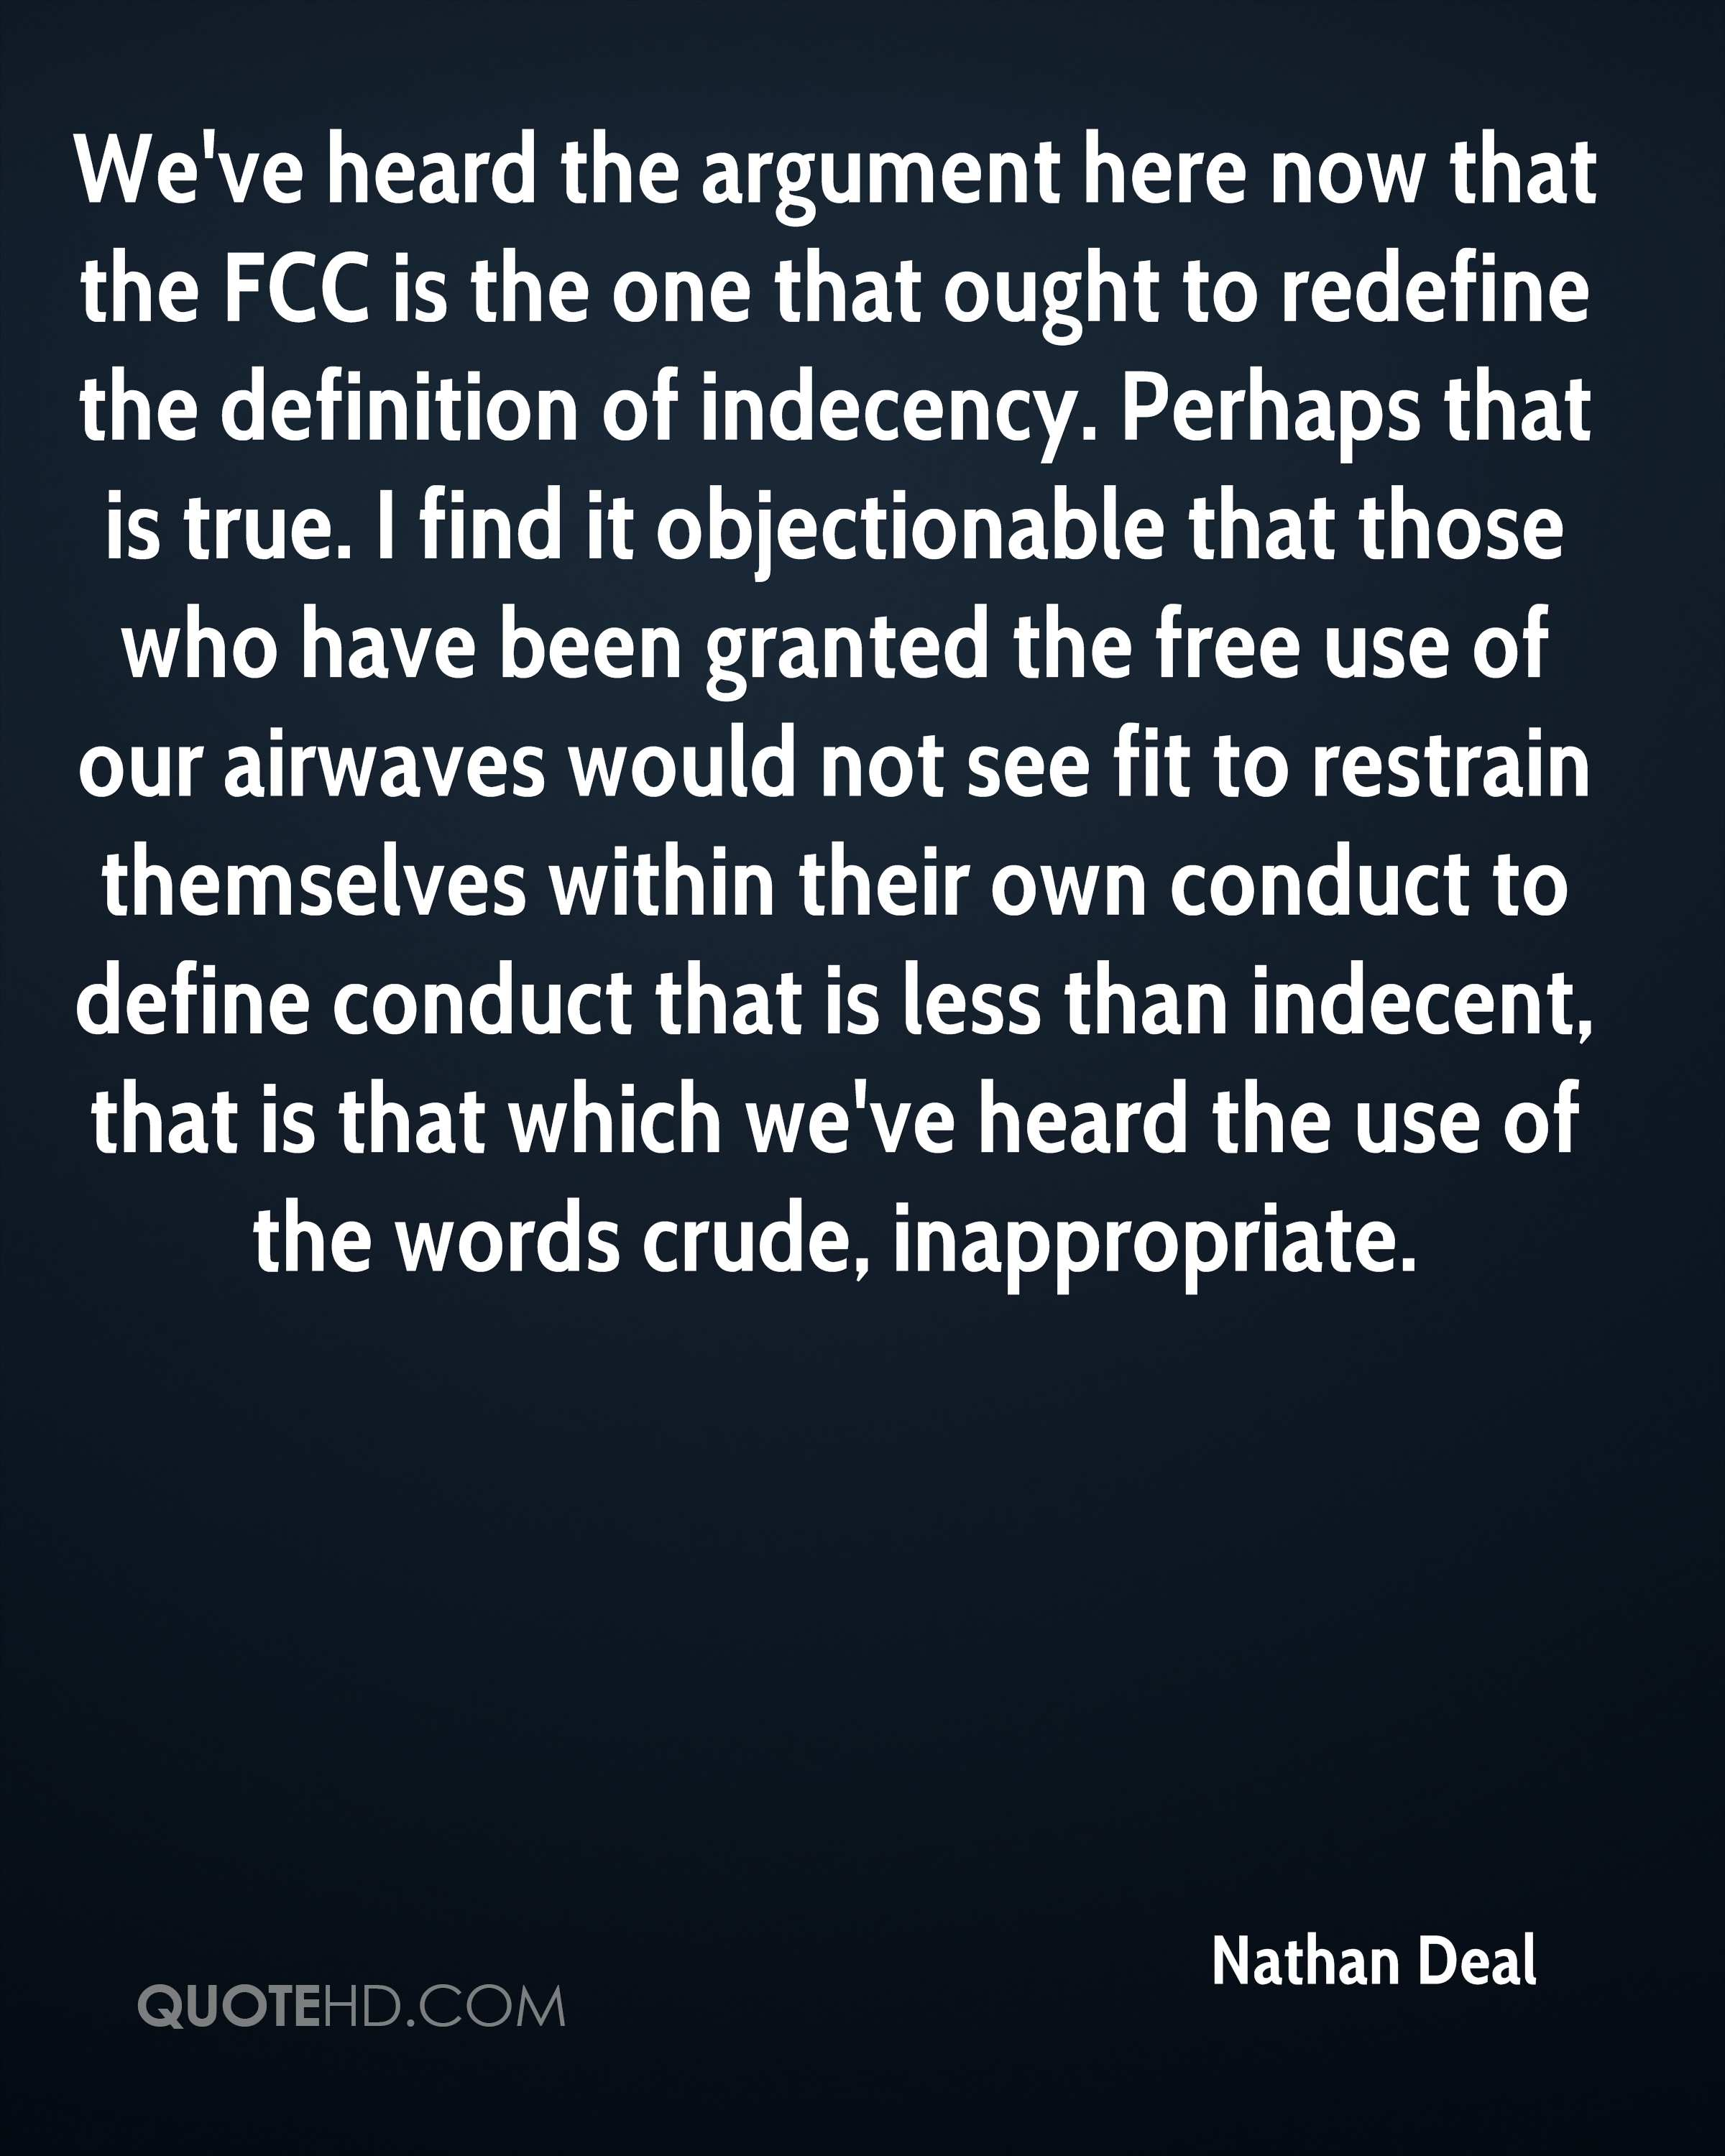 We've heard the argument here now that the FCC is the one that ought to redefine the definition of indecency. Perhaps that is true. I find it objectionable that those who have been granted the free use of our airwaves would not see fit to restrain themselves within their own conduct to define conduct that is less than indecent, that is that which we've heard the use of the words crude, inappropriate.